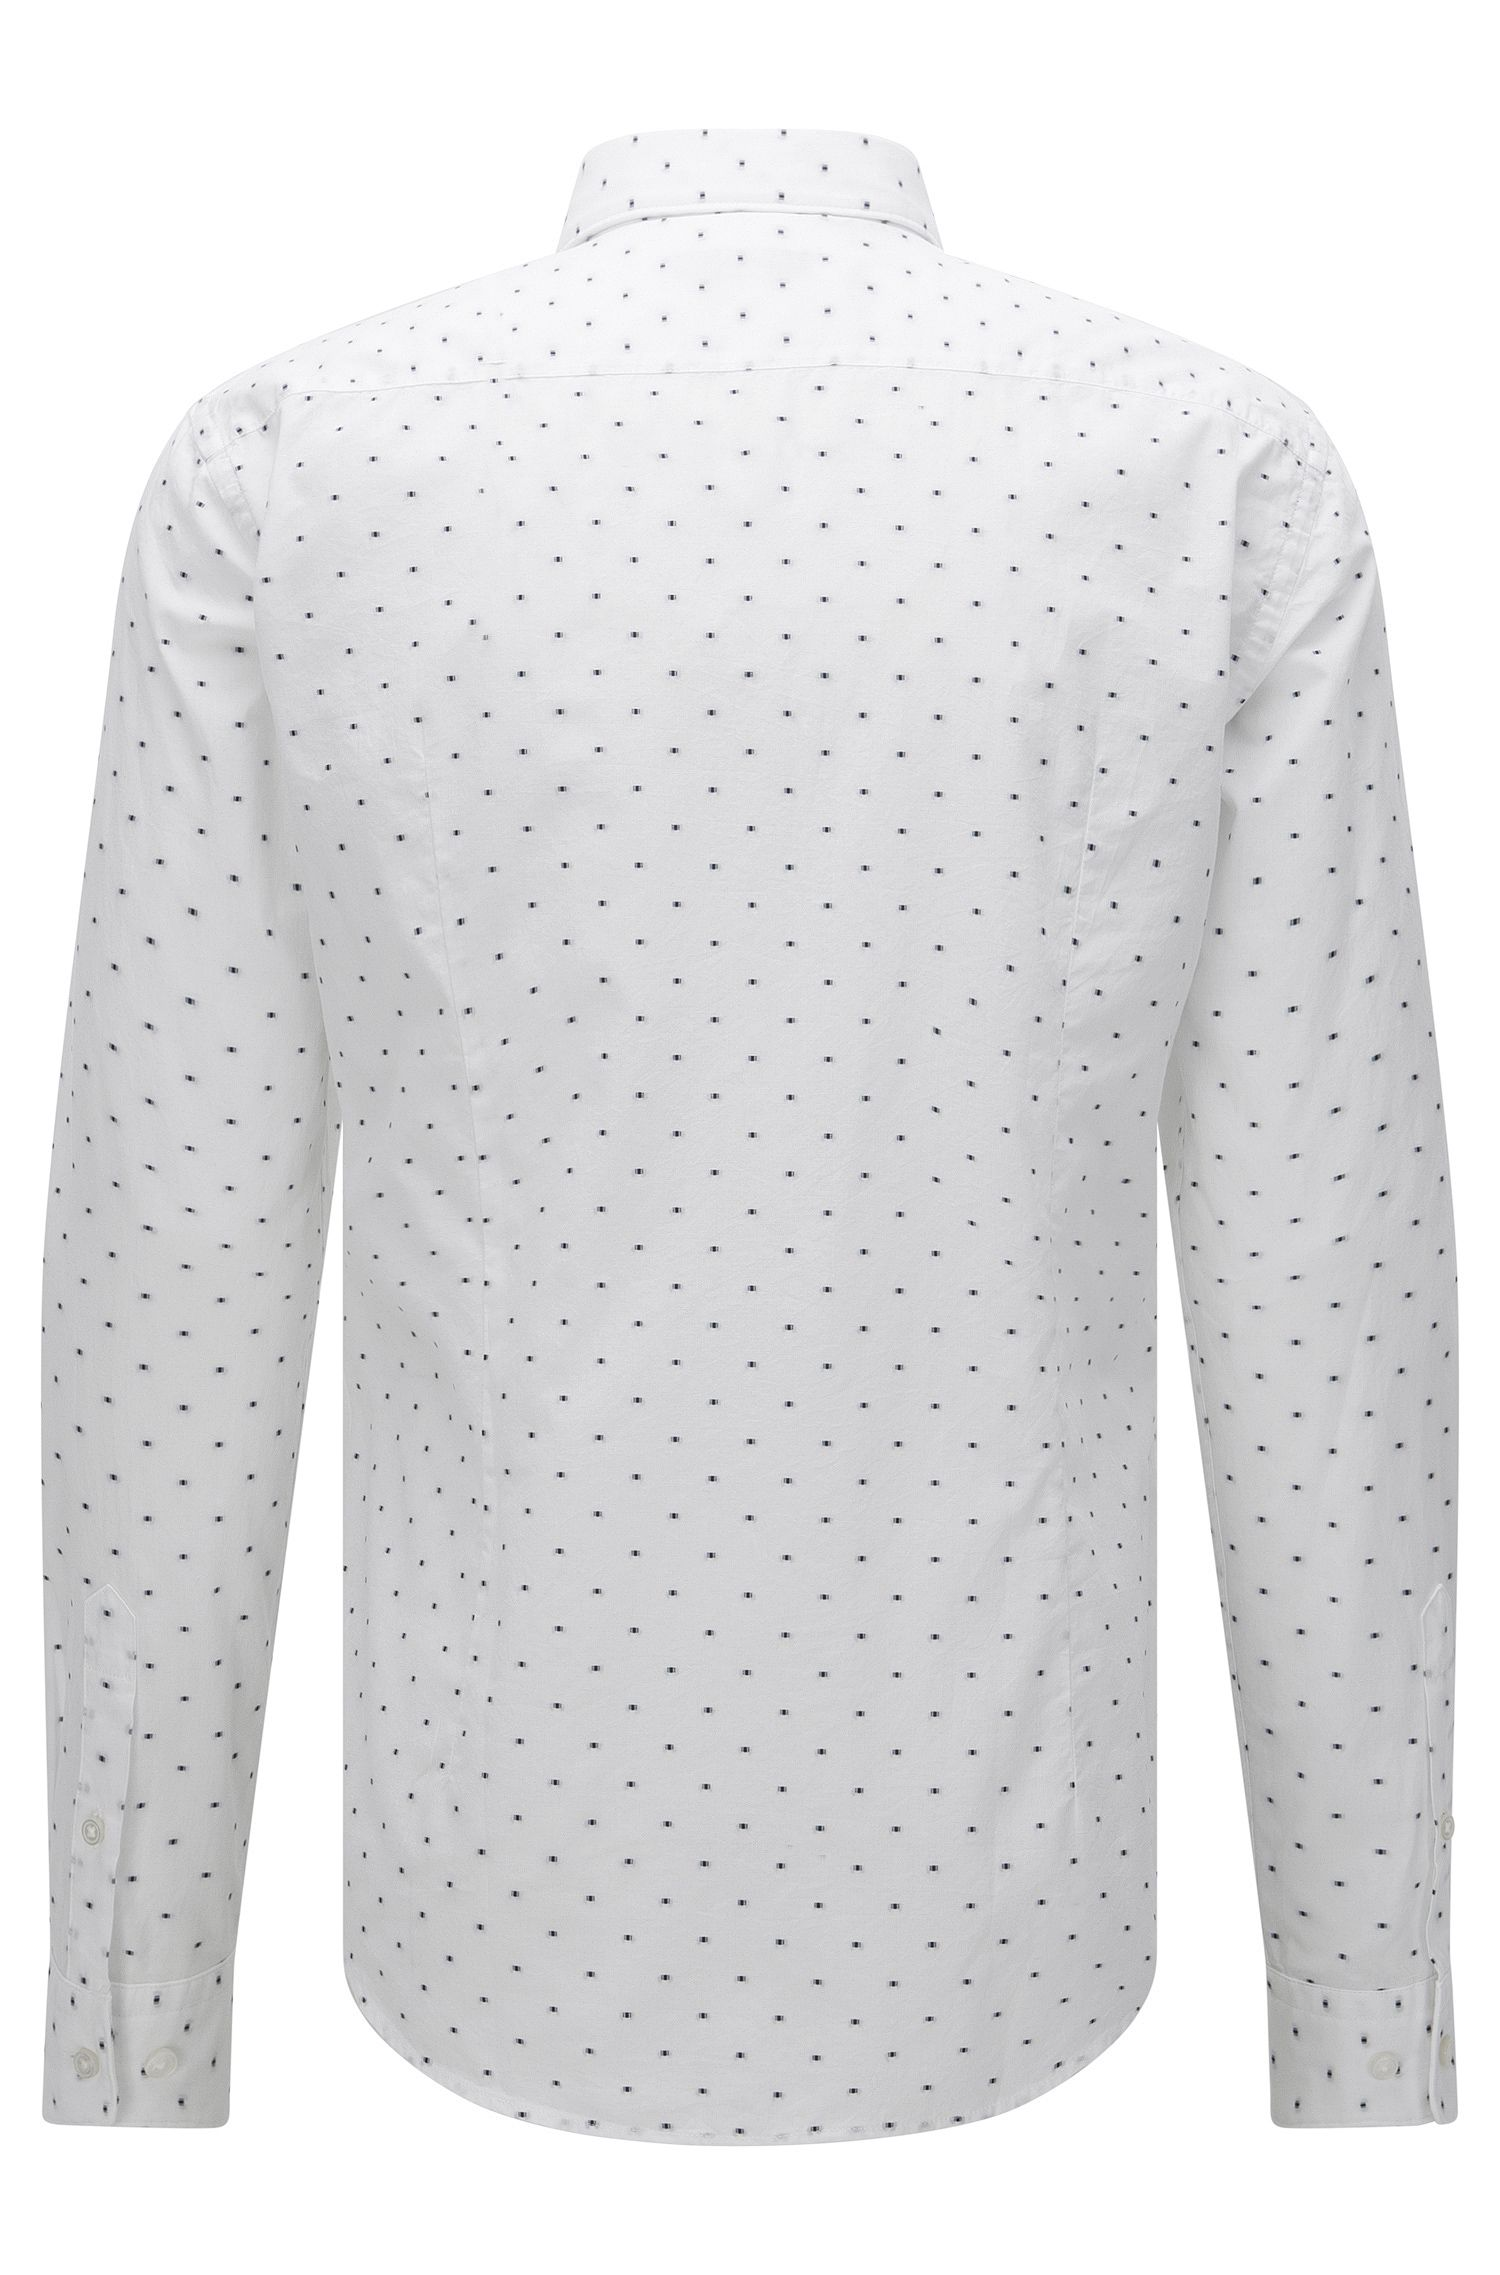 'Ridley'   Slim Fit, Cotton Embroidered Button Down Shirt, White